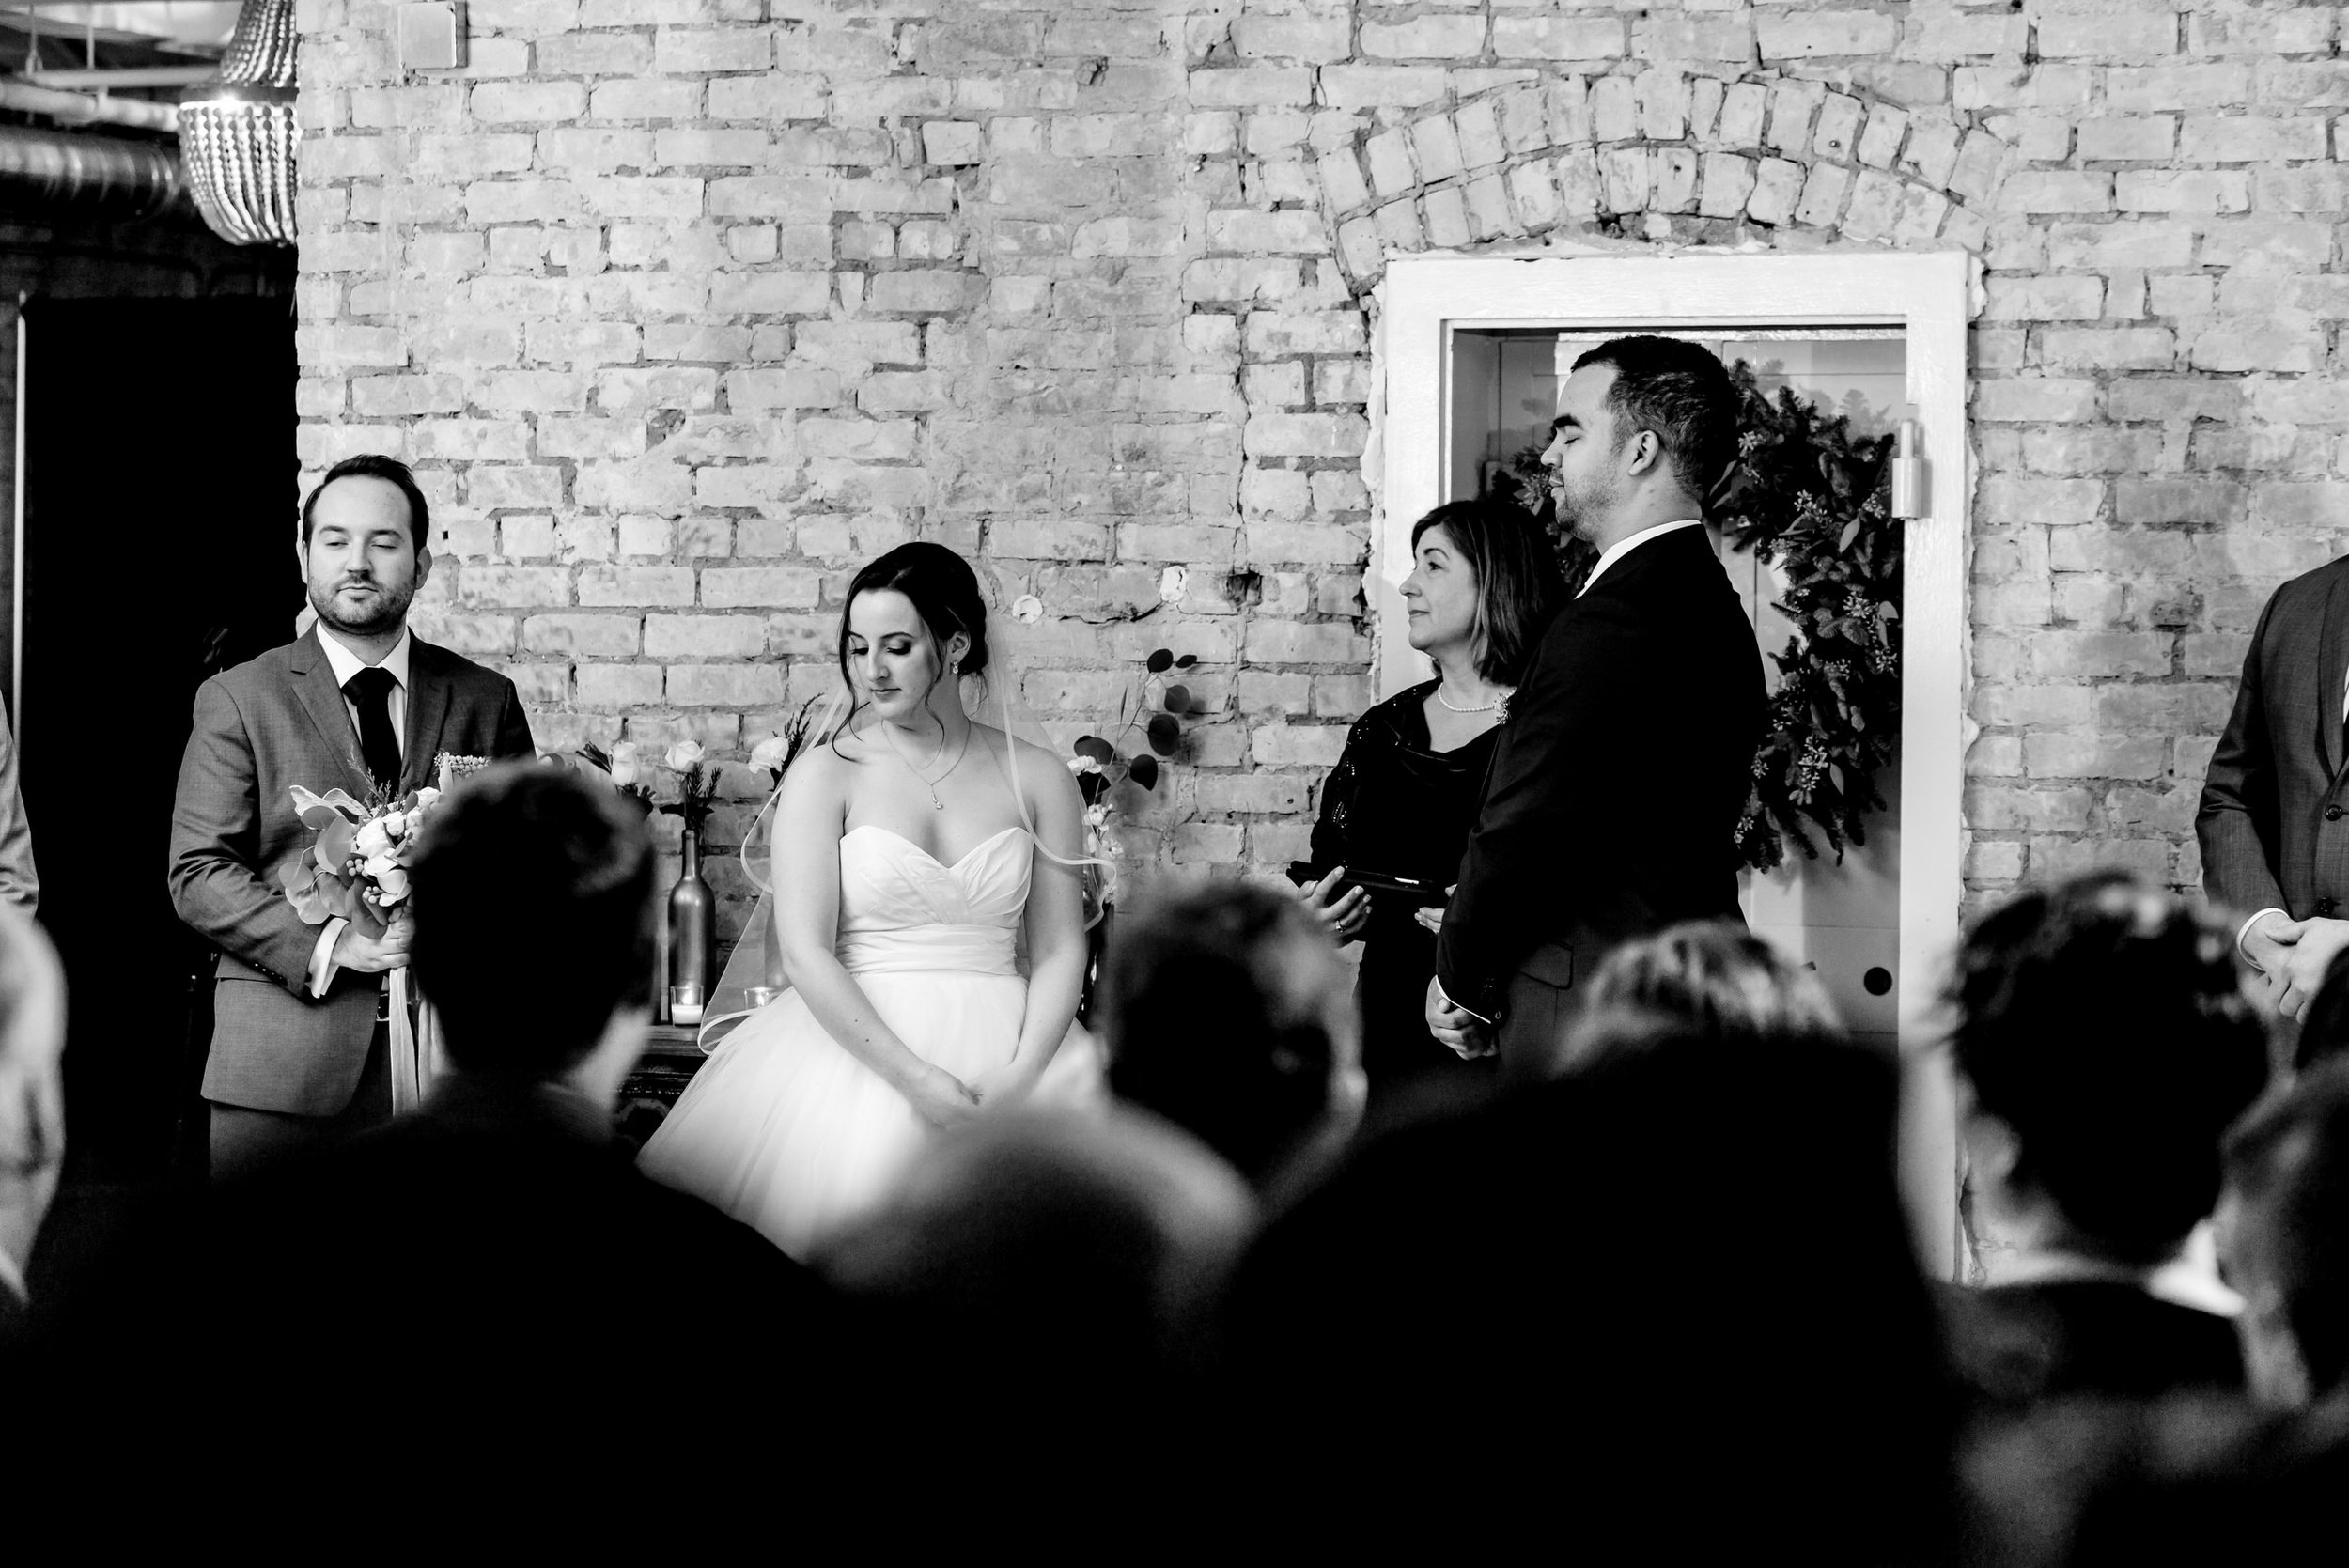 Megan and Alec - Lumber Exchange Wedding Sawyer Dylan Room - Highlights BW-189.jpg